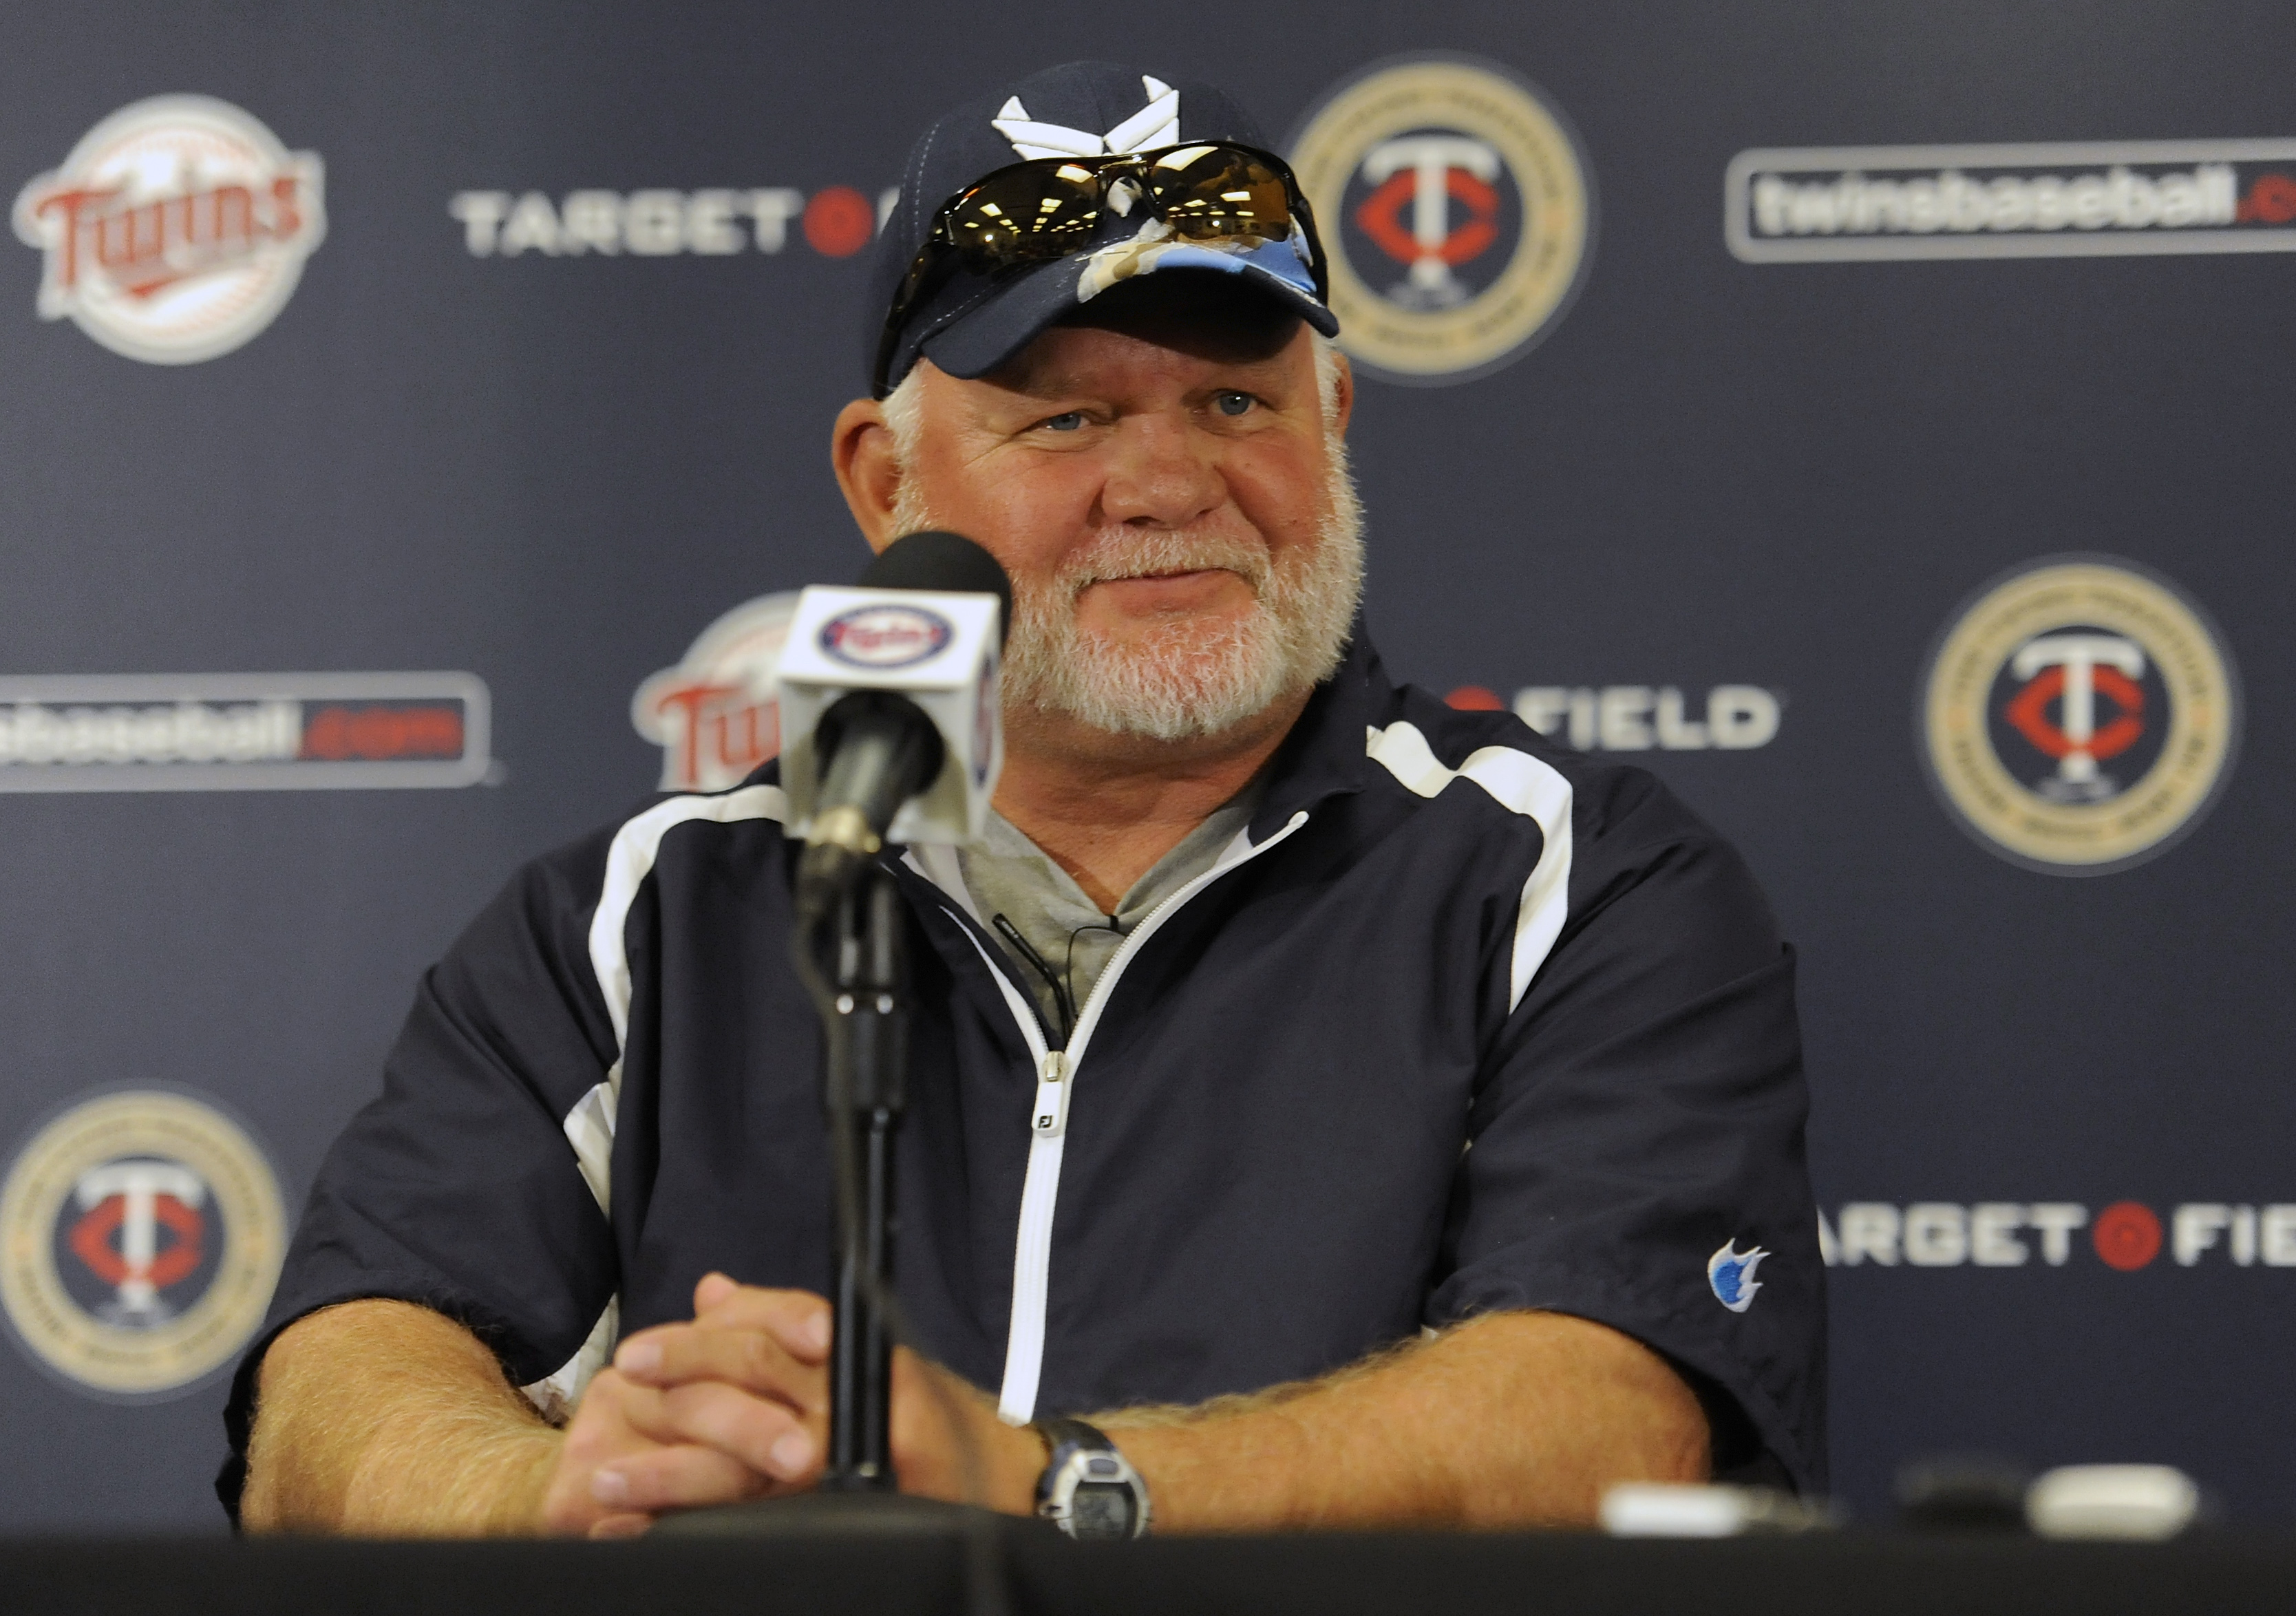 Minnesota Twins Announce They Will Replace Ron Gardenhire as Manager